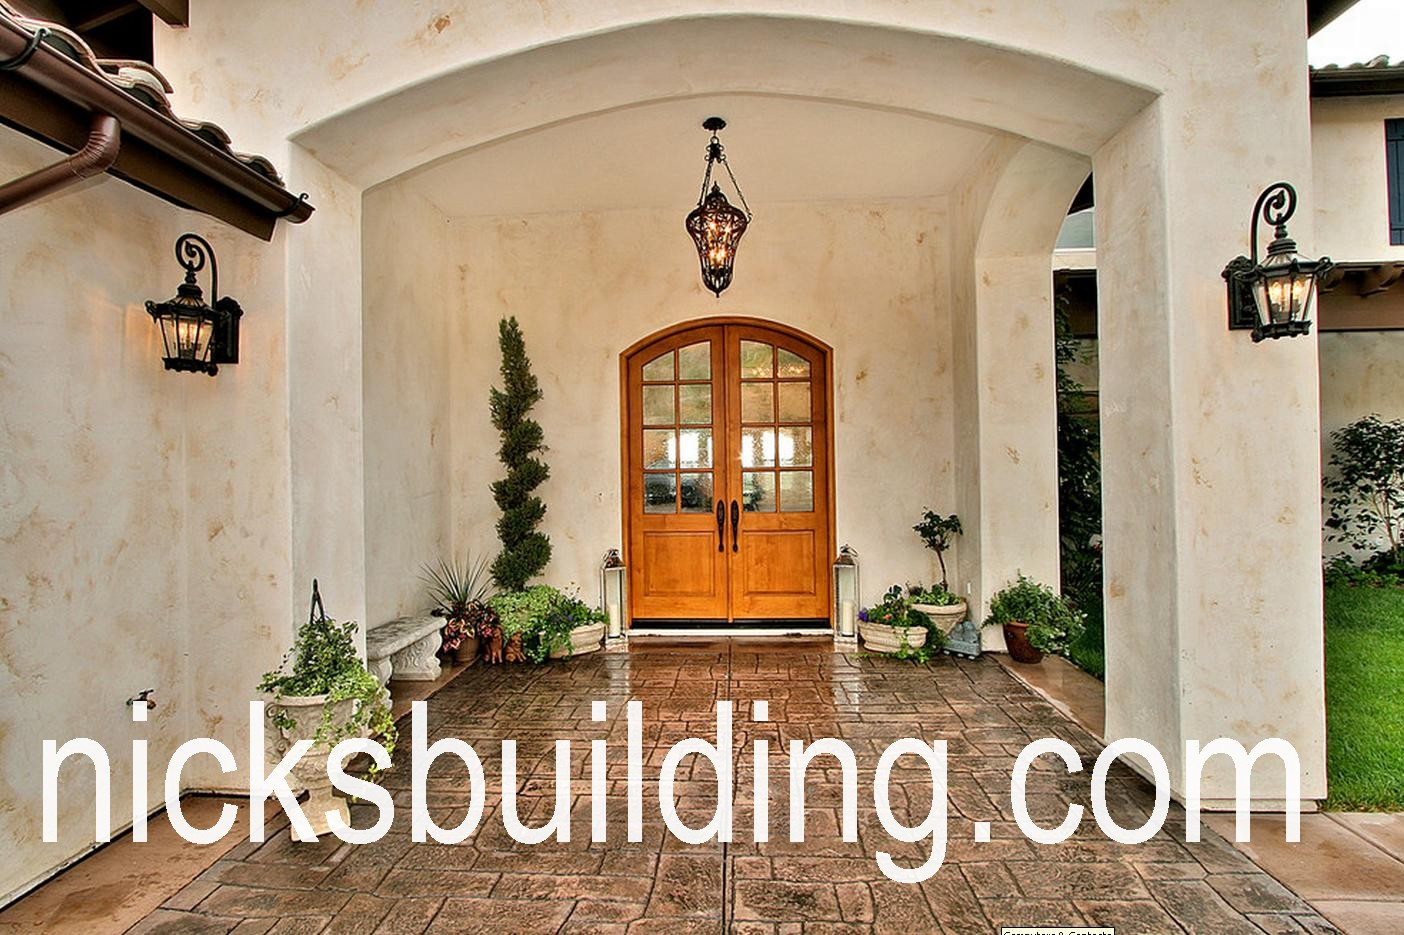 935 #B34F09 ROUND TOP EXTERIOR DOORS ARCHED ENTRY DOORS ARCH TOP FRONT DOORS  pic Round Top Exterior Doors 39811404